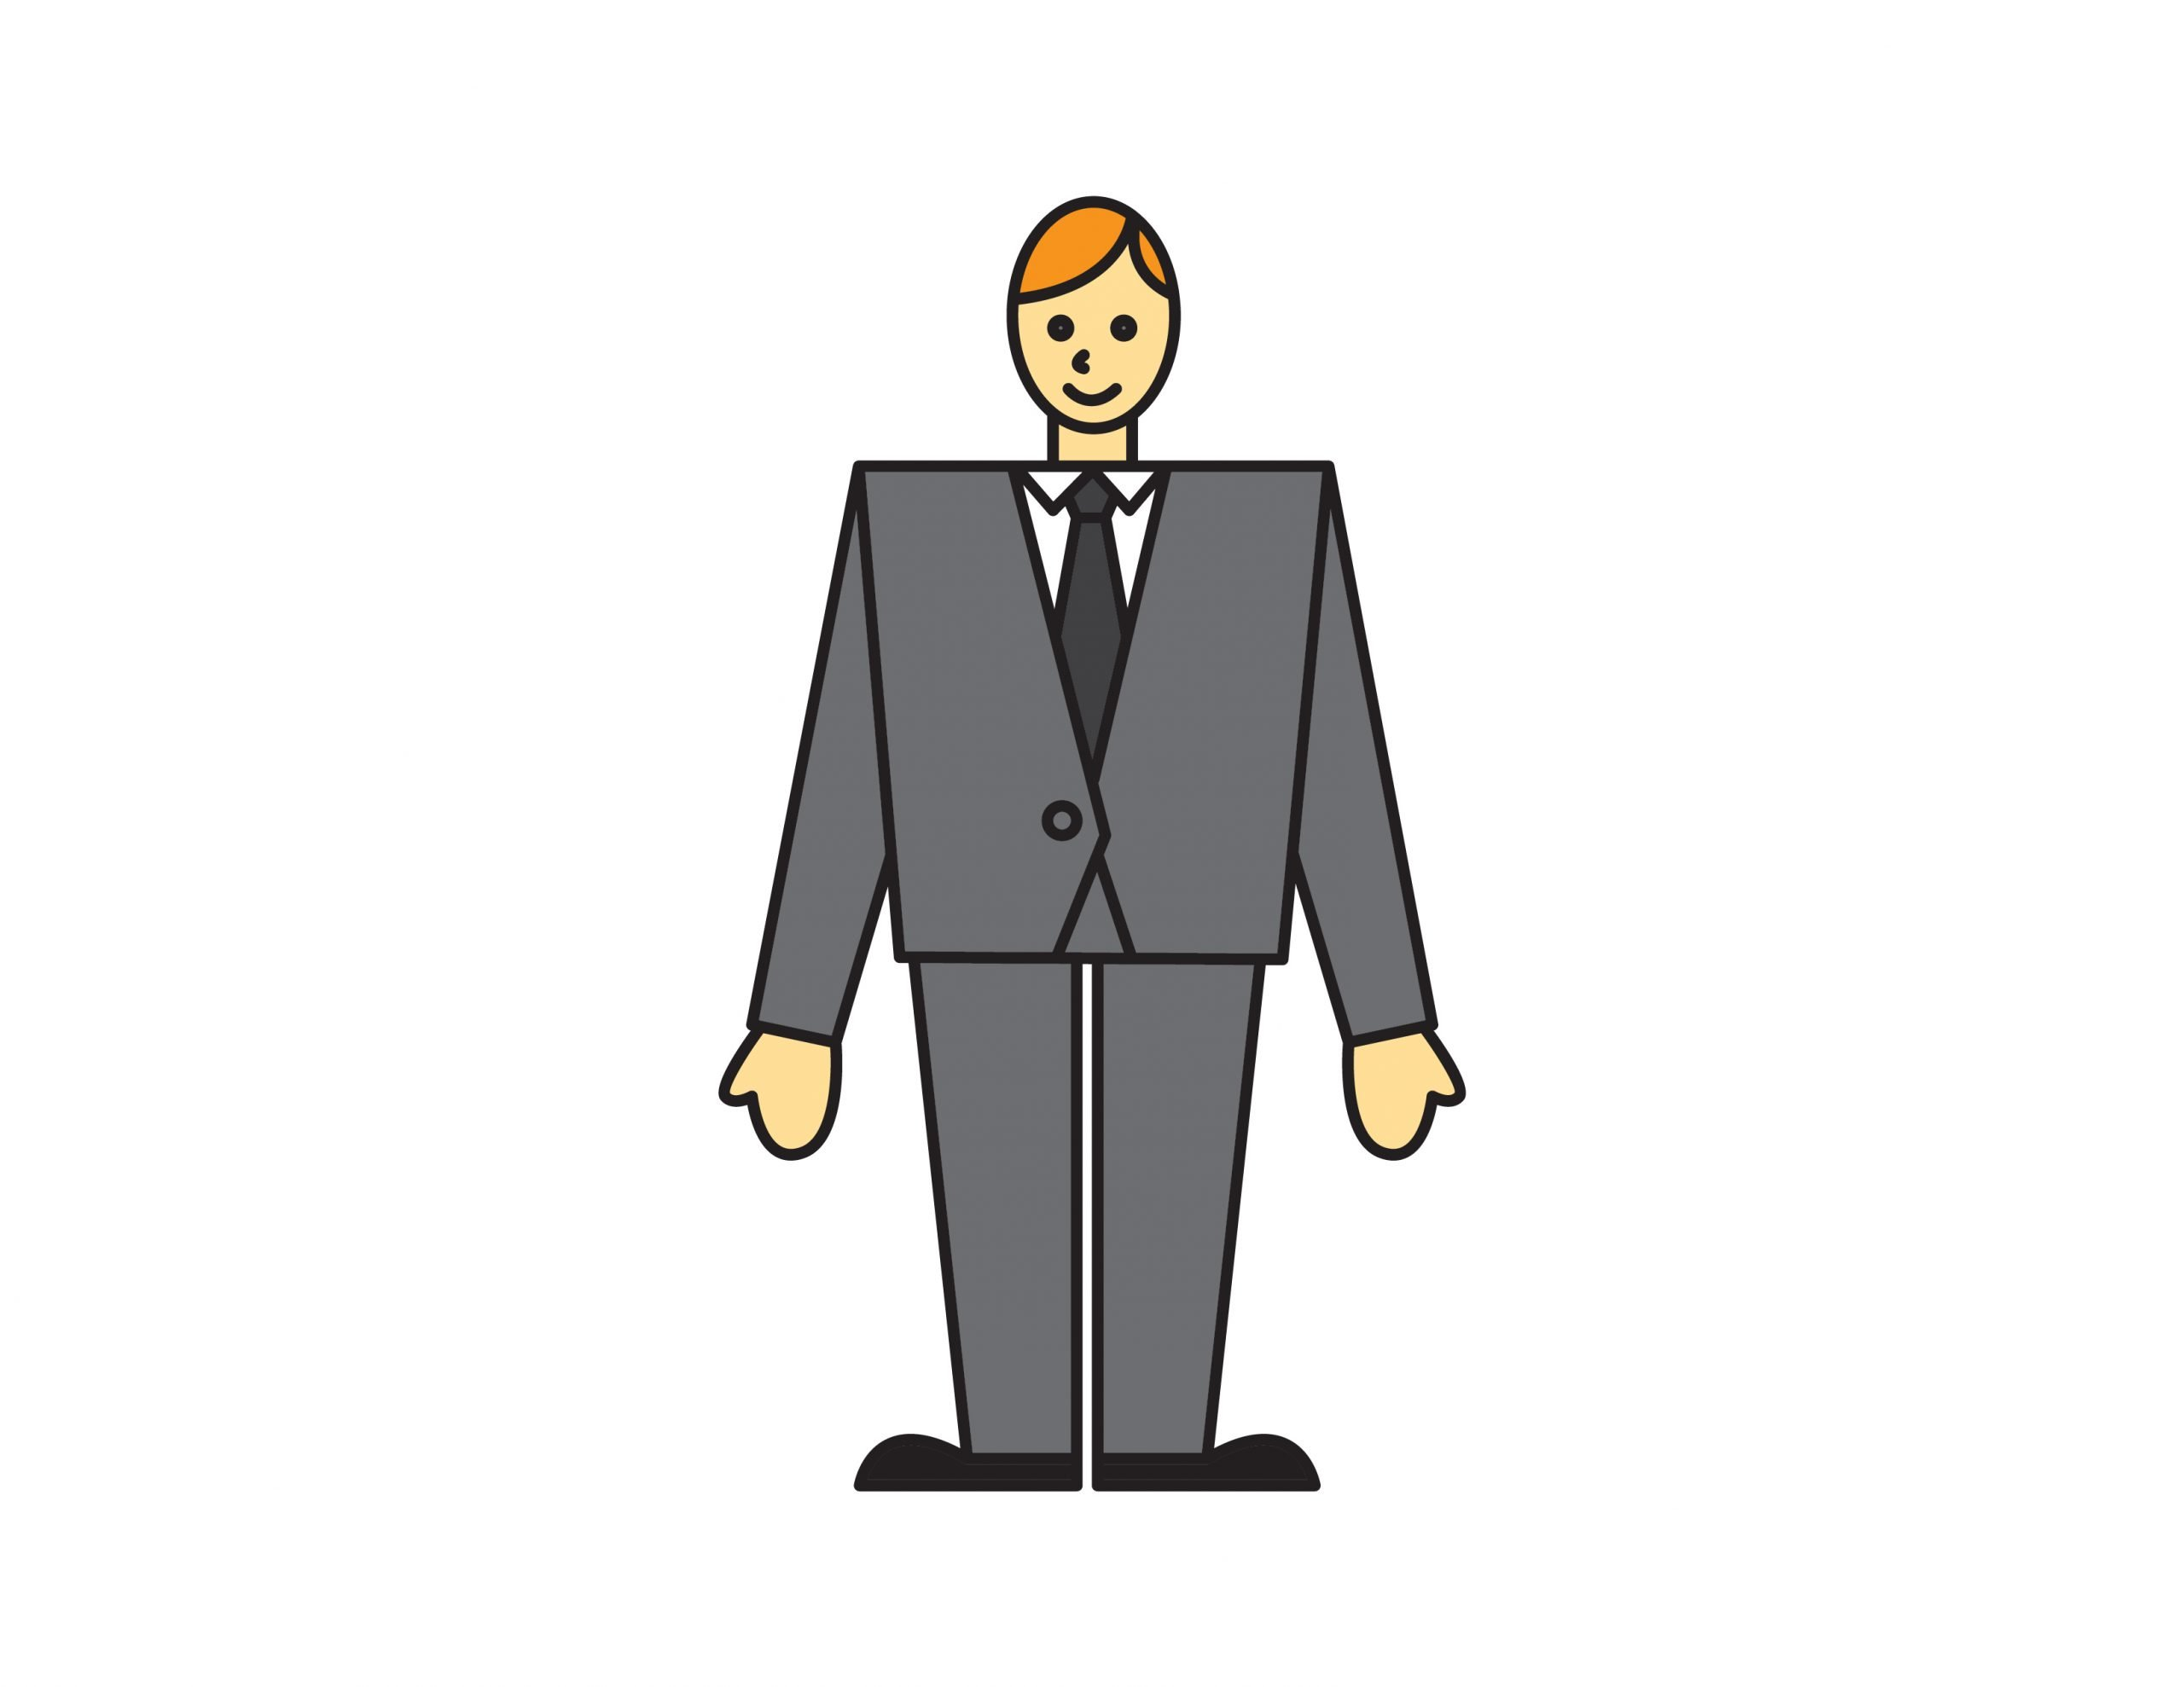 How To Draw Business Suit & Tie for Kids – Step By Step EASY Doodle Tutorial For Little Kids